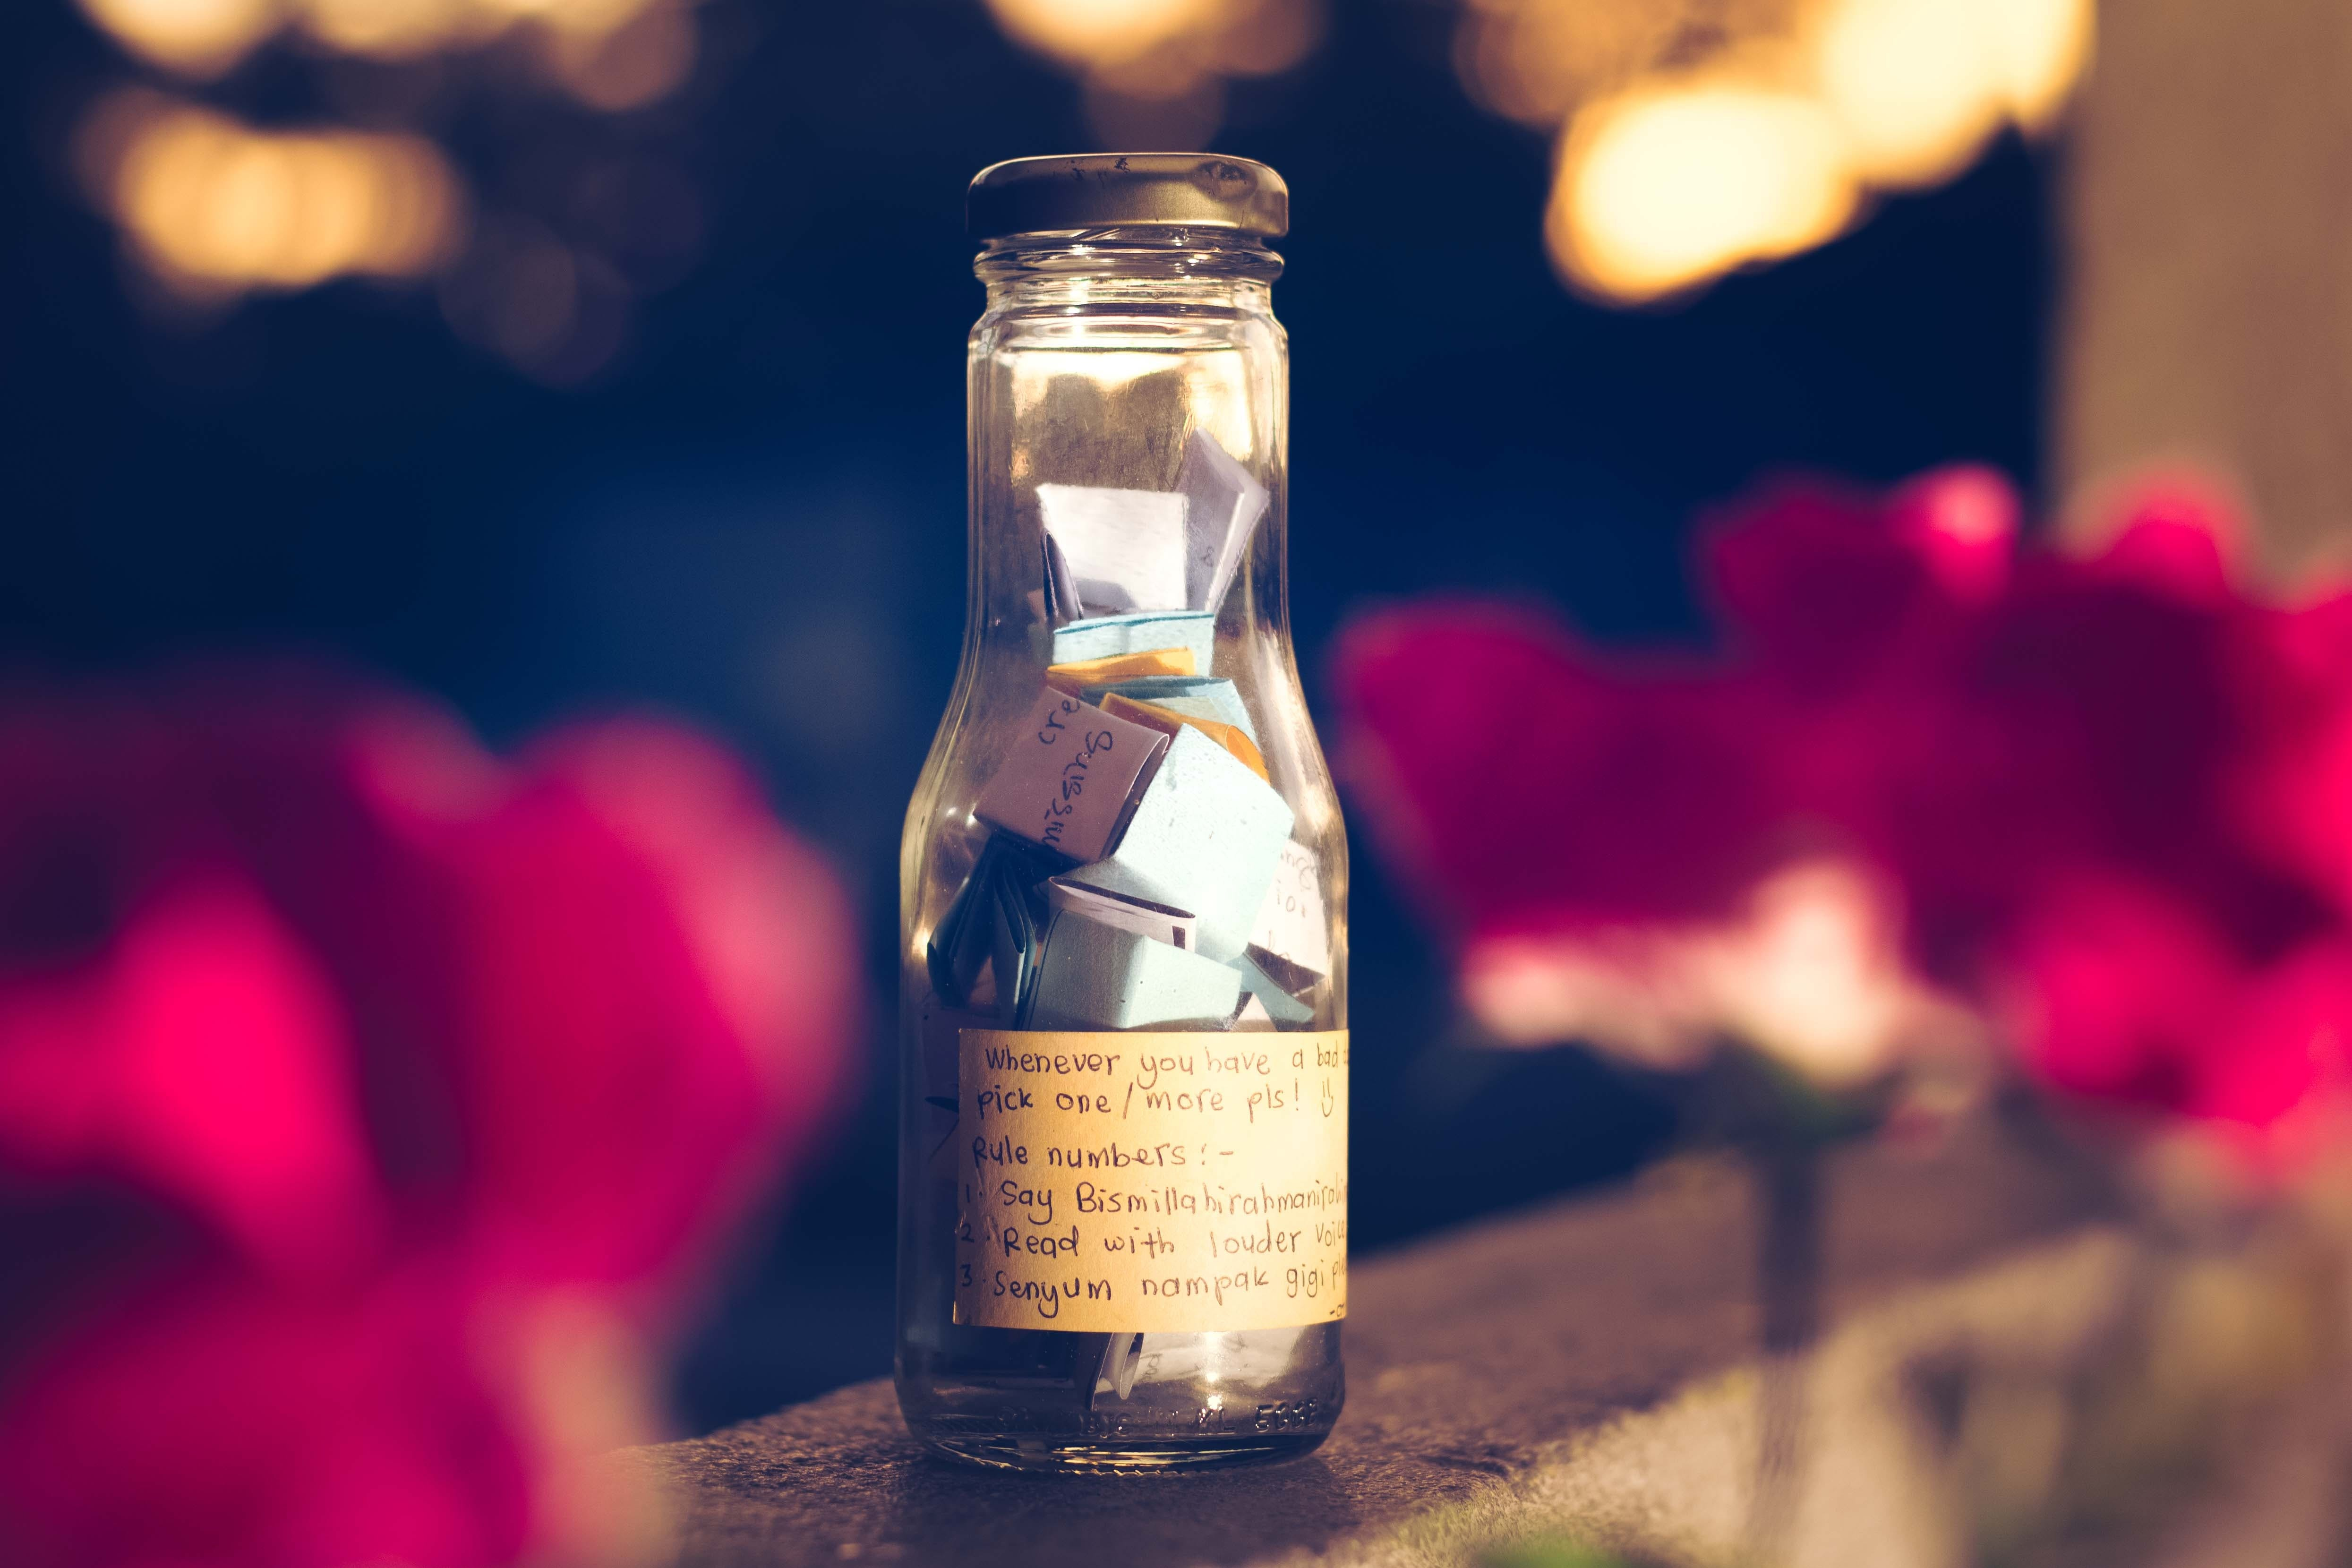 Shallow Focus Photography of Clear Glass Bottle